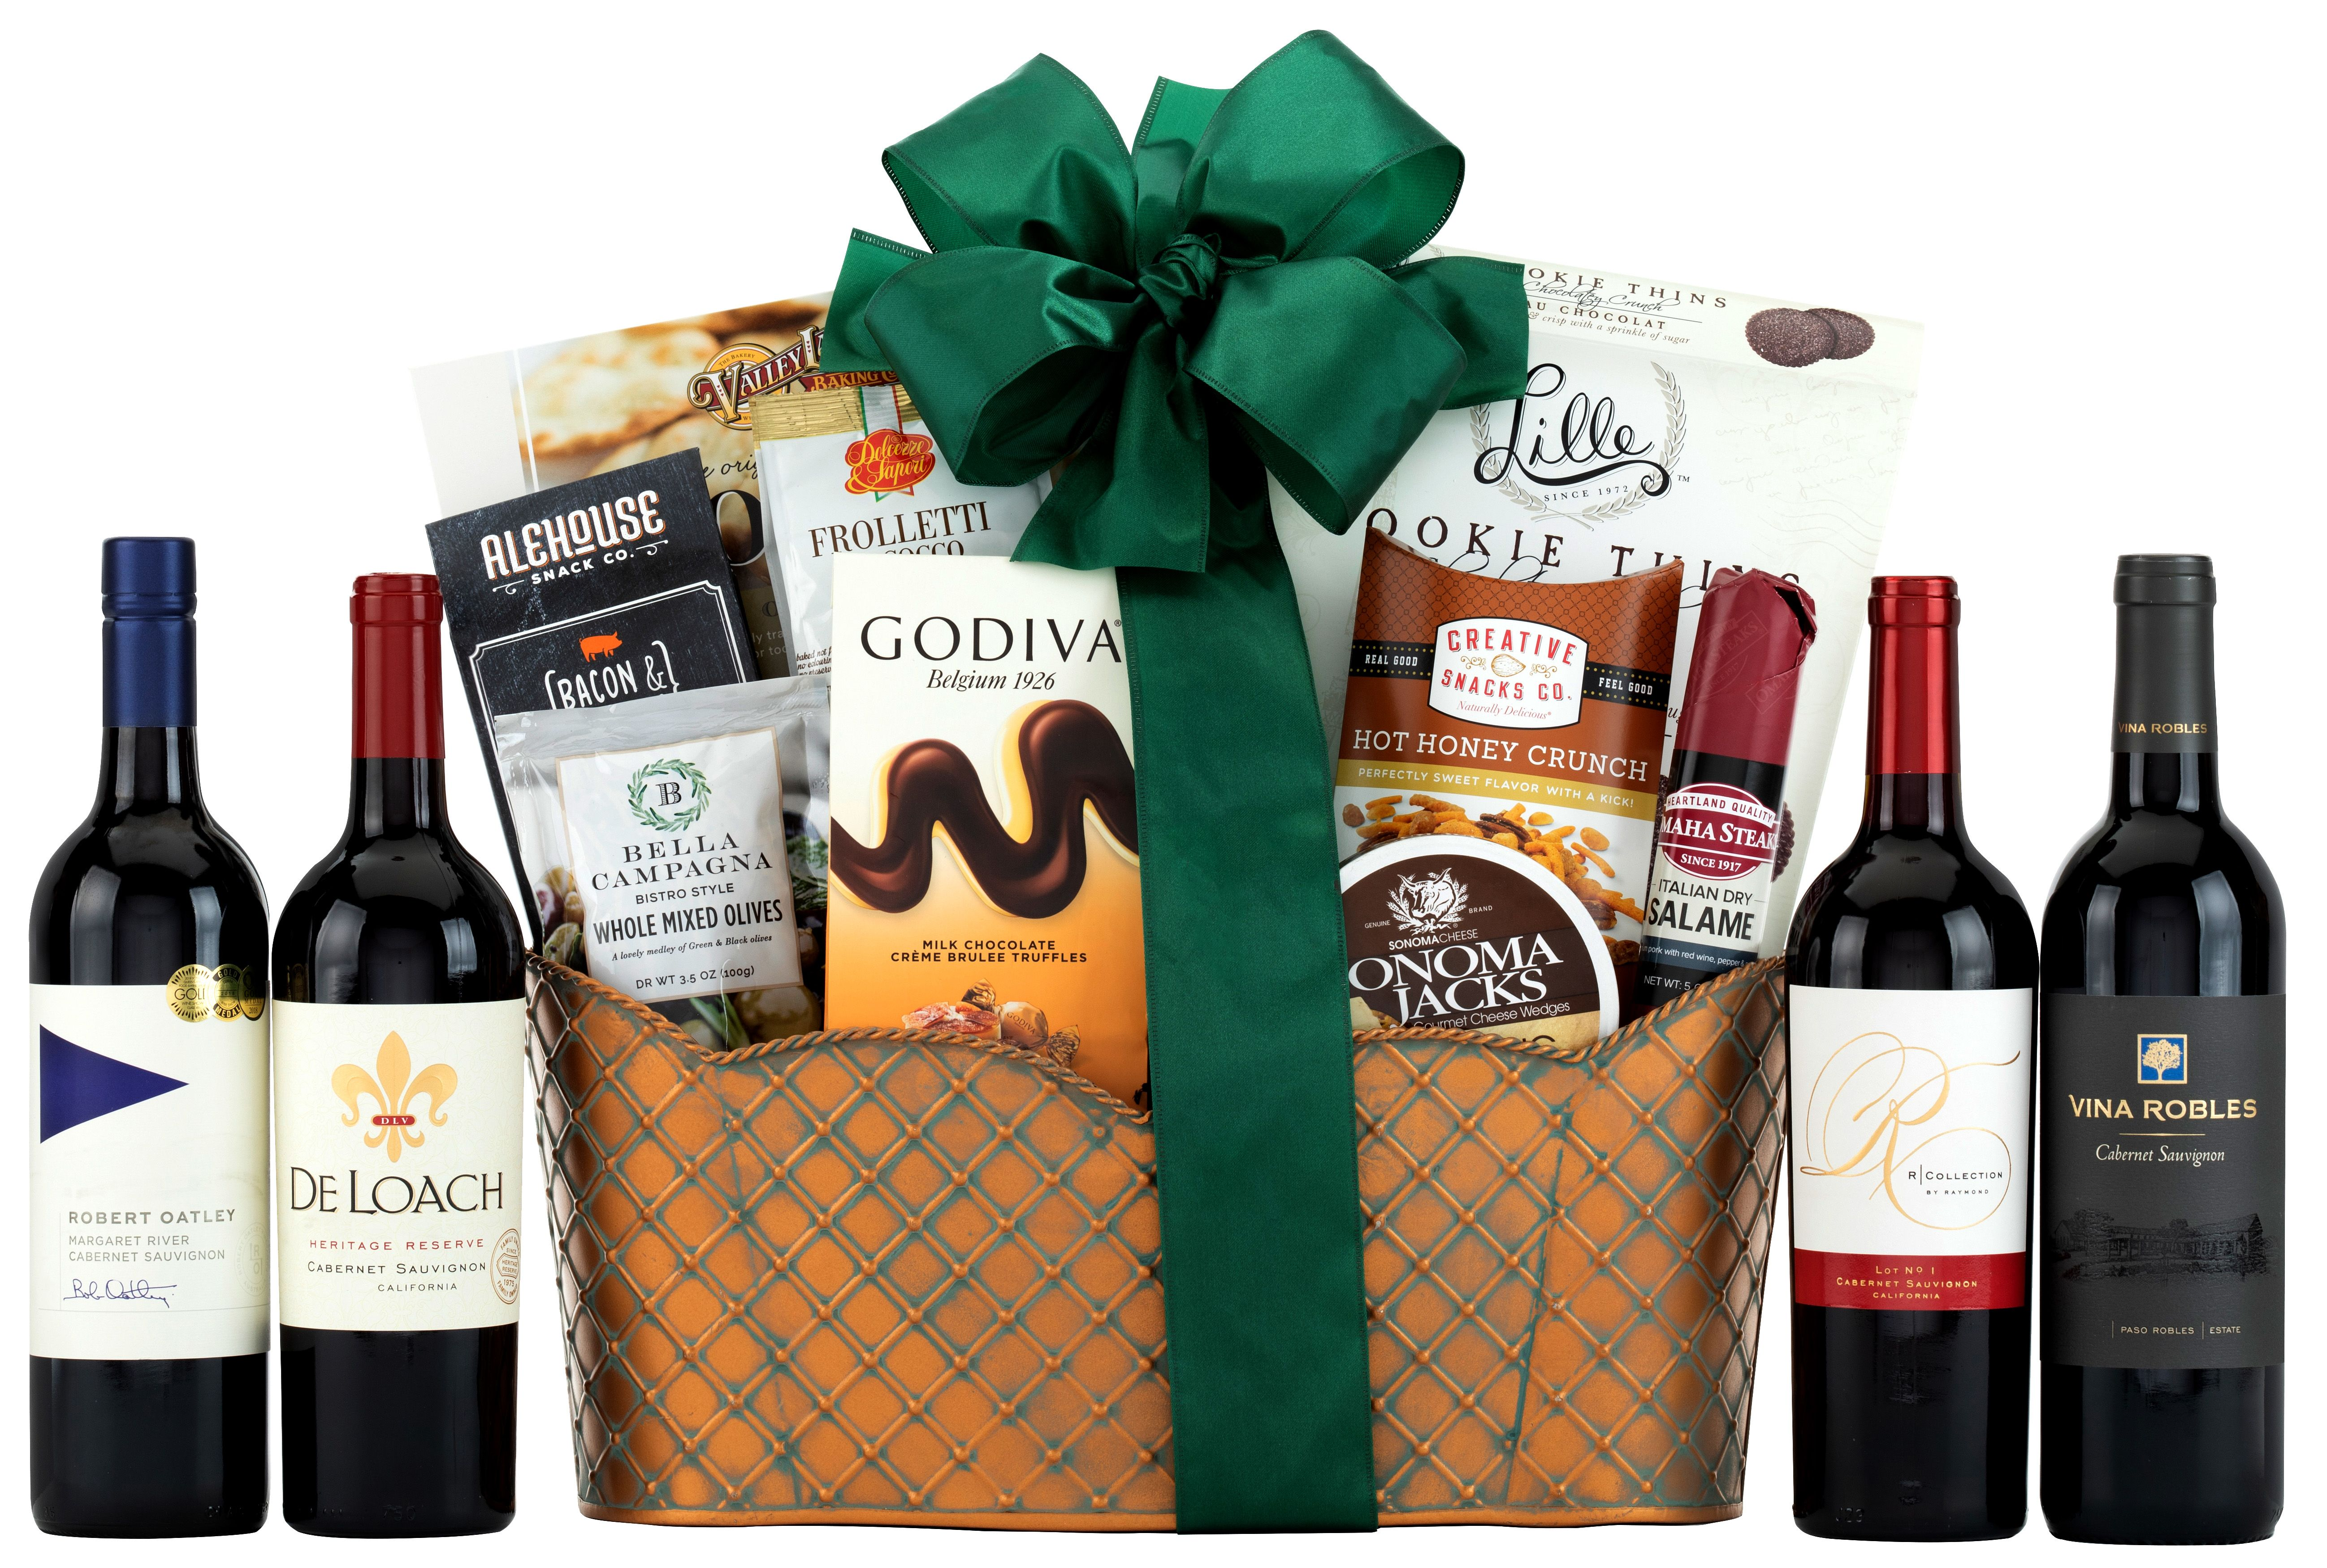 wine.com Executive Selection Cabernet Gift Basket  Gift Product Image